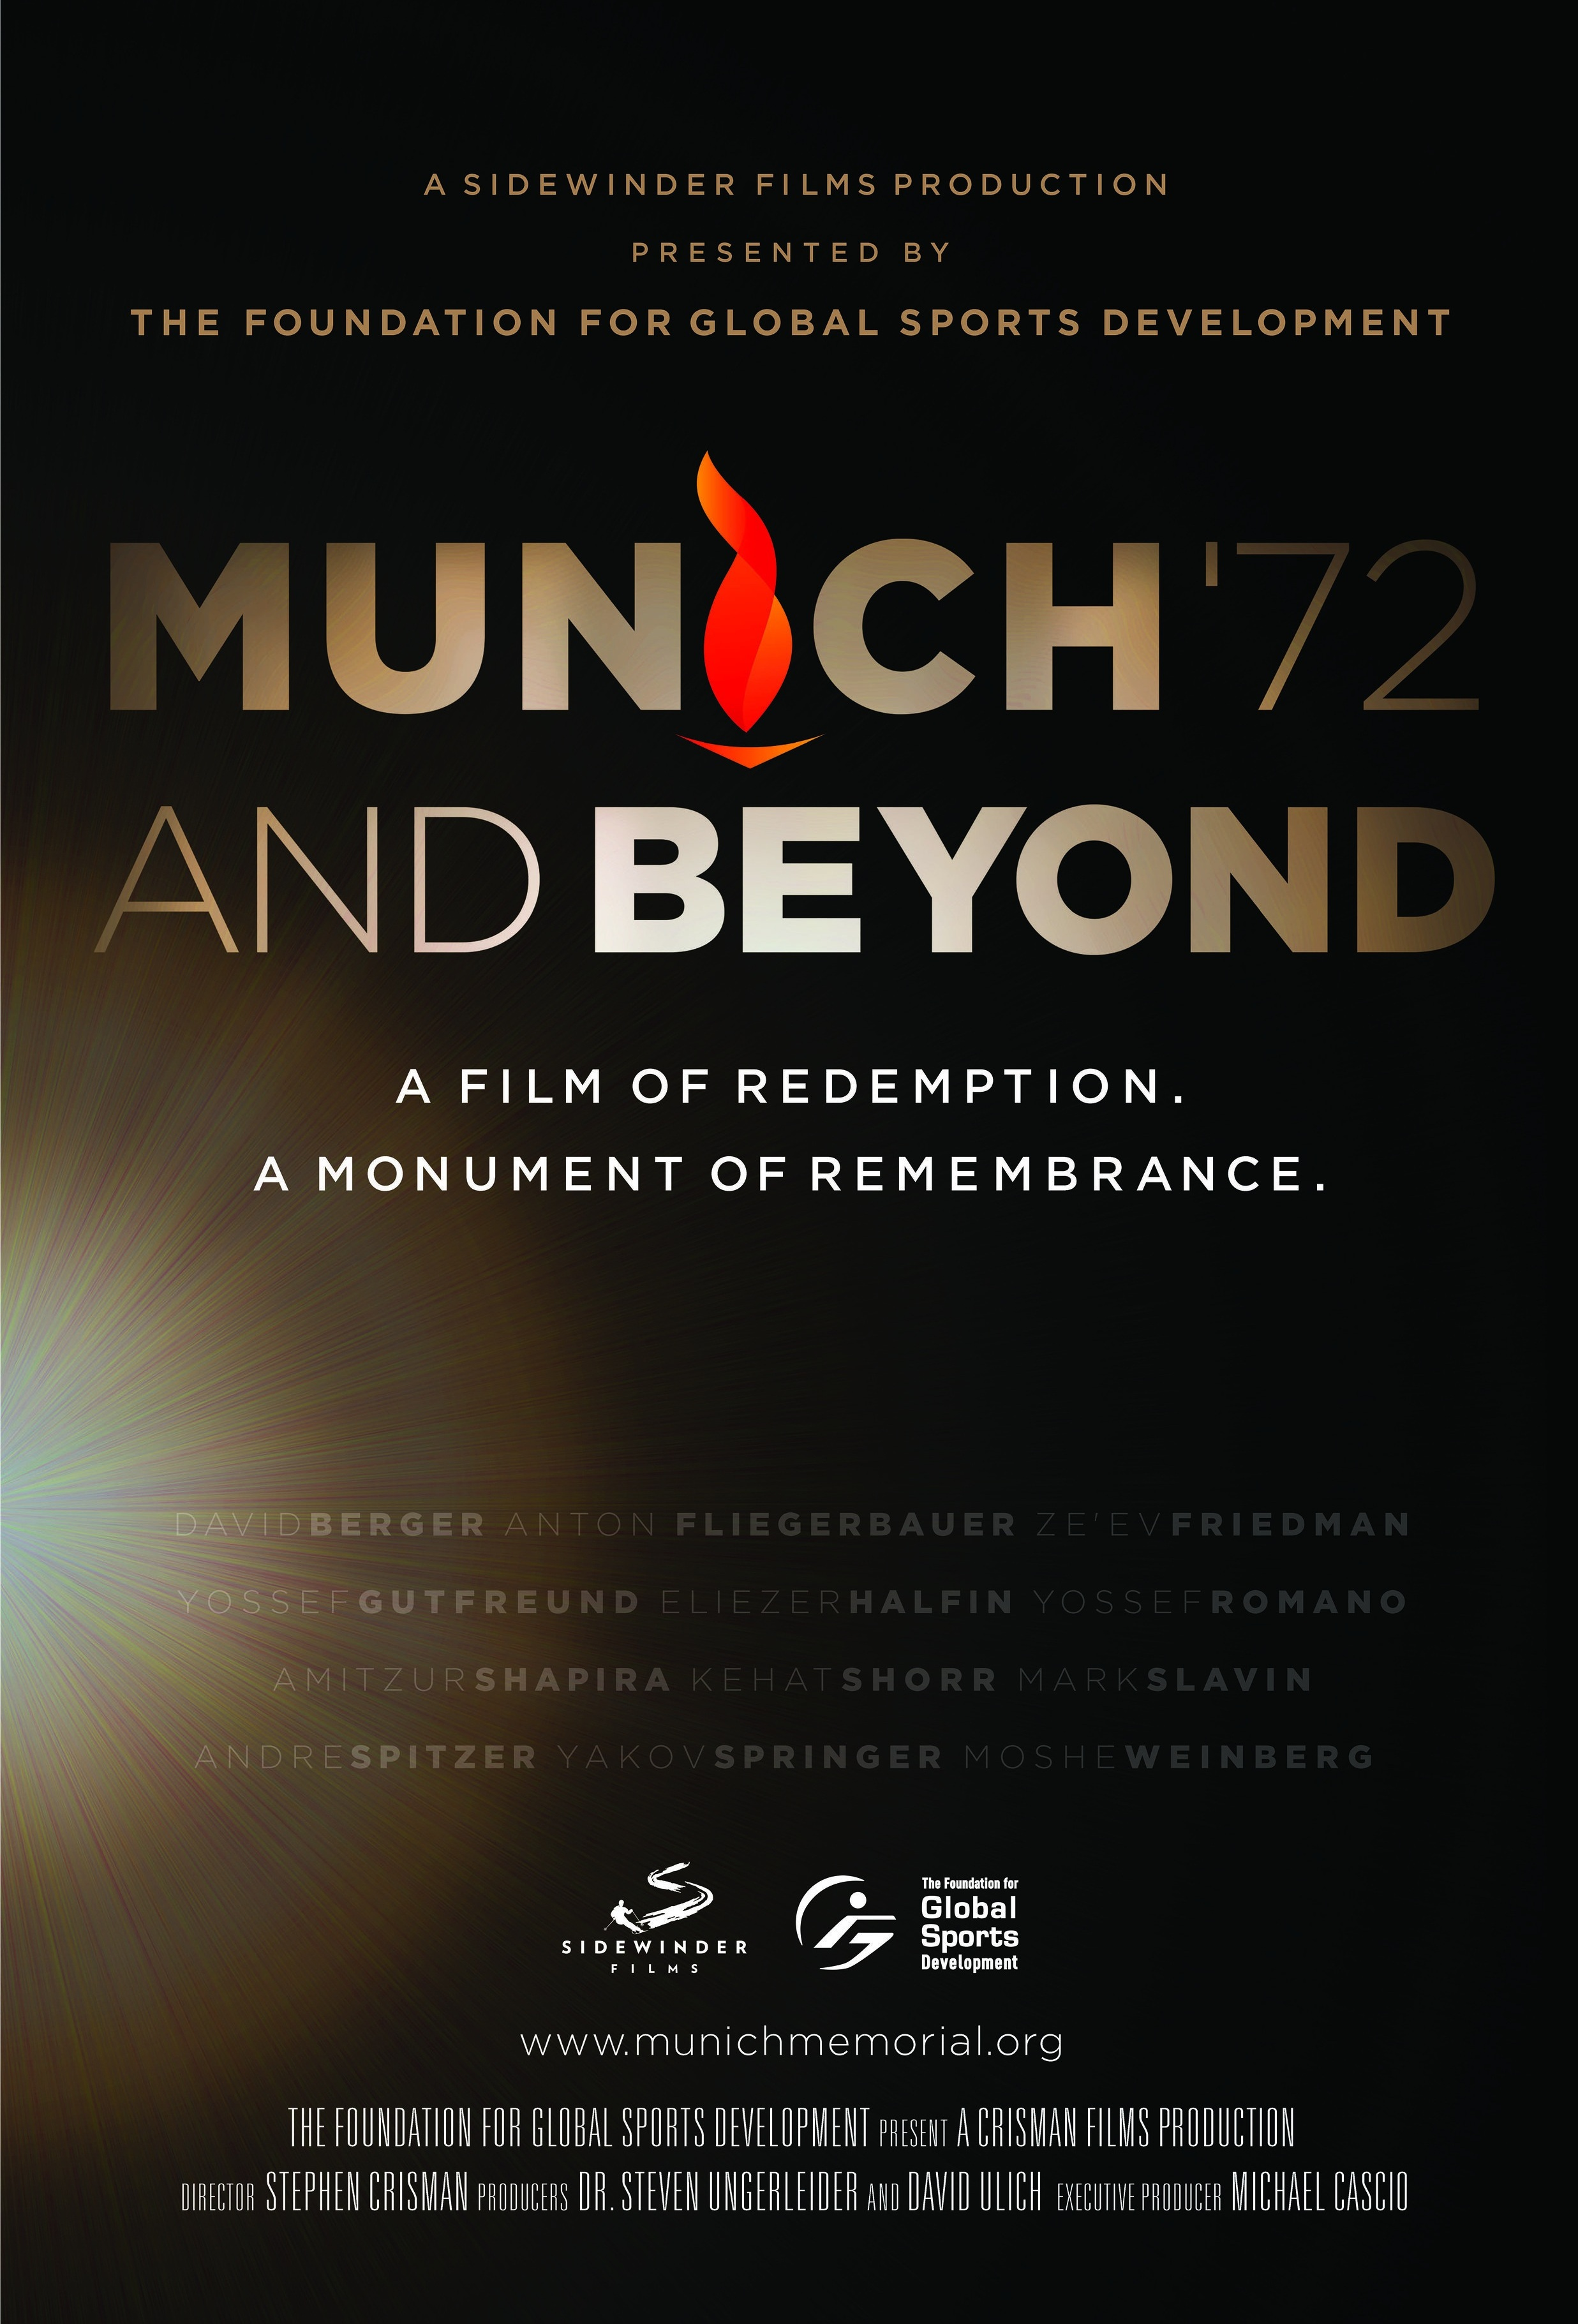 """- September 5, 1972 Terrorists took eleven Israeli athletes hostage at the Munich Olympics, shattering Germany's """"Happy Games"""" and the political sanctuary at the heart of the Olympic movement. The """"Munich Massacre"""" ended tragically with the death of all eleven Israelis and a German policeman, and quickly became a historical turning point for the Olympics, terrorism, and for a world audience tuned into the first international broadcast of the games. Governments reacted while the families of the victims tirelessly sought answers. Still, all these years later one task remained incomplete: the creation of a memorial sufficient enough to recognize the courage of the fallen athletes.Global Sports Development Producers, Dr. Steven Ungerleider and David Ulich, have partnered with Director Stephen Crisman and Executive Producer Michael Cascio to capture the story of the Munich Memorial, and to create an unflinching, elegant, and timely examination of contemporary remembrance. Memorials honor the fallen, but they also demand the past remain present. The documentary will revisit Munich's history and bring it into a contemporary moment through intimate interviews and access to those involved, revealing shocking details the public has never before heard.Ultimately, Munich '72 and Beyond is a very human story. It is an empowering story which suggests that memory is a critical, contemporary action capable of far more hope than grief."""